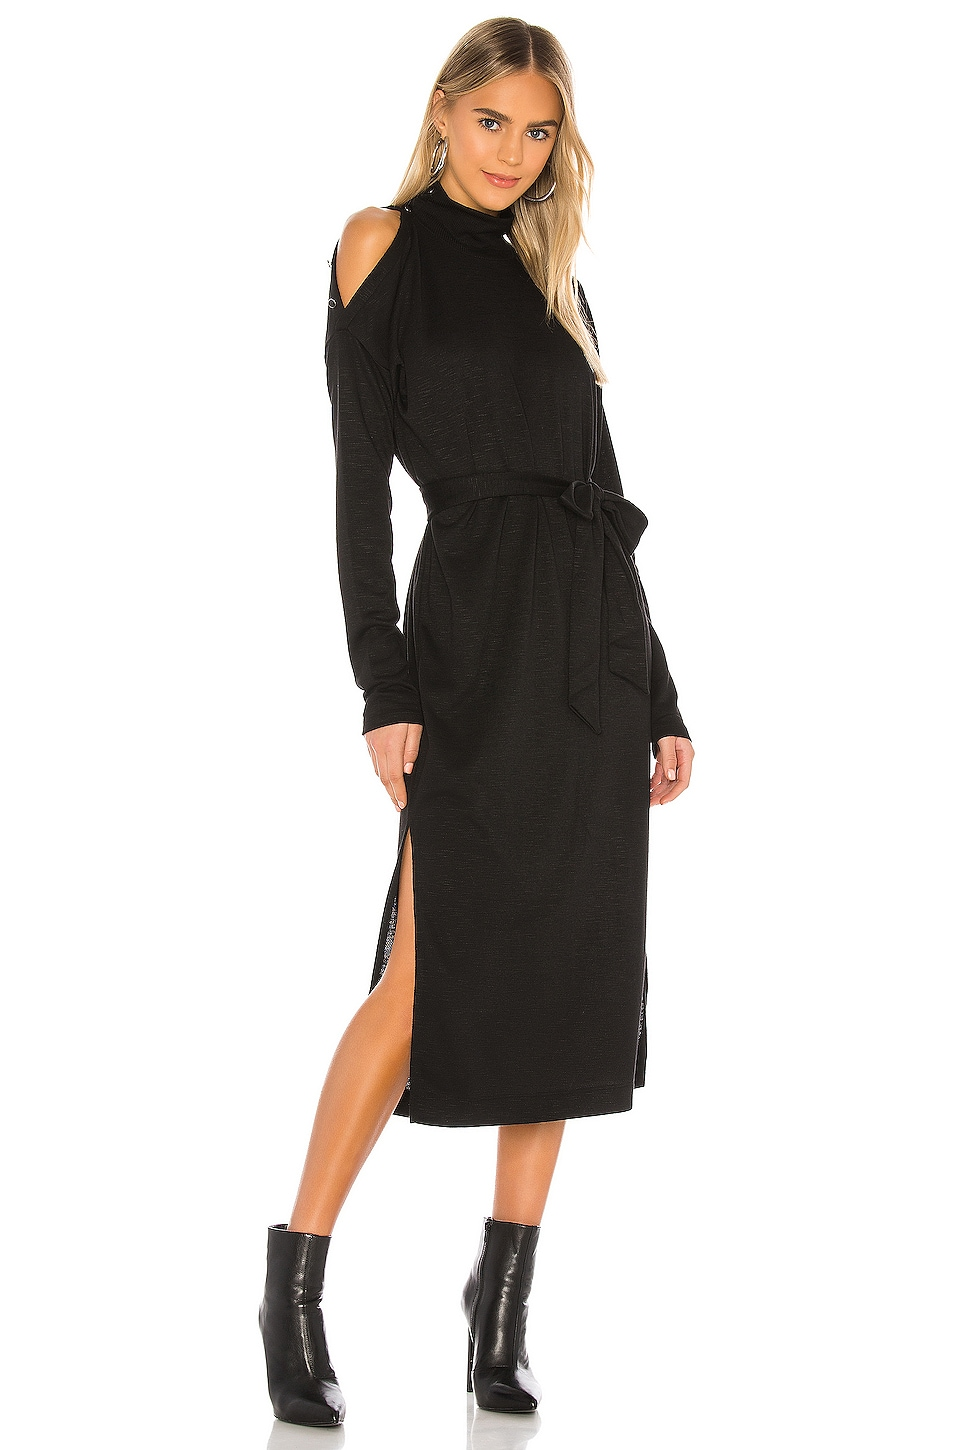 PAIGE Paxton Dress in Black